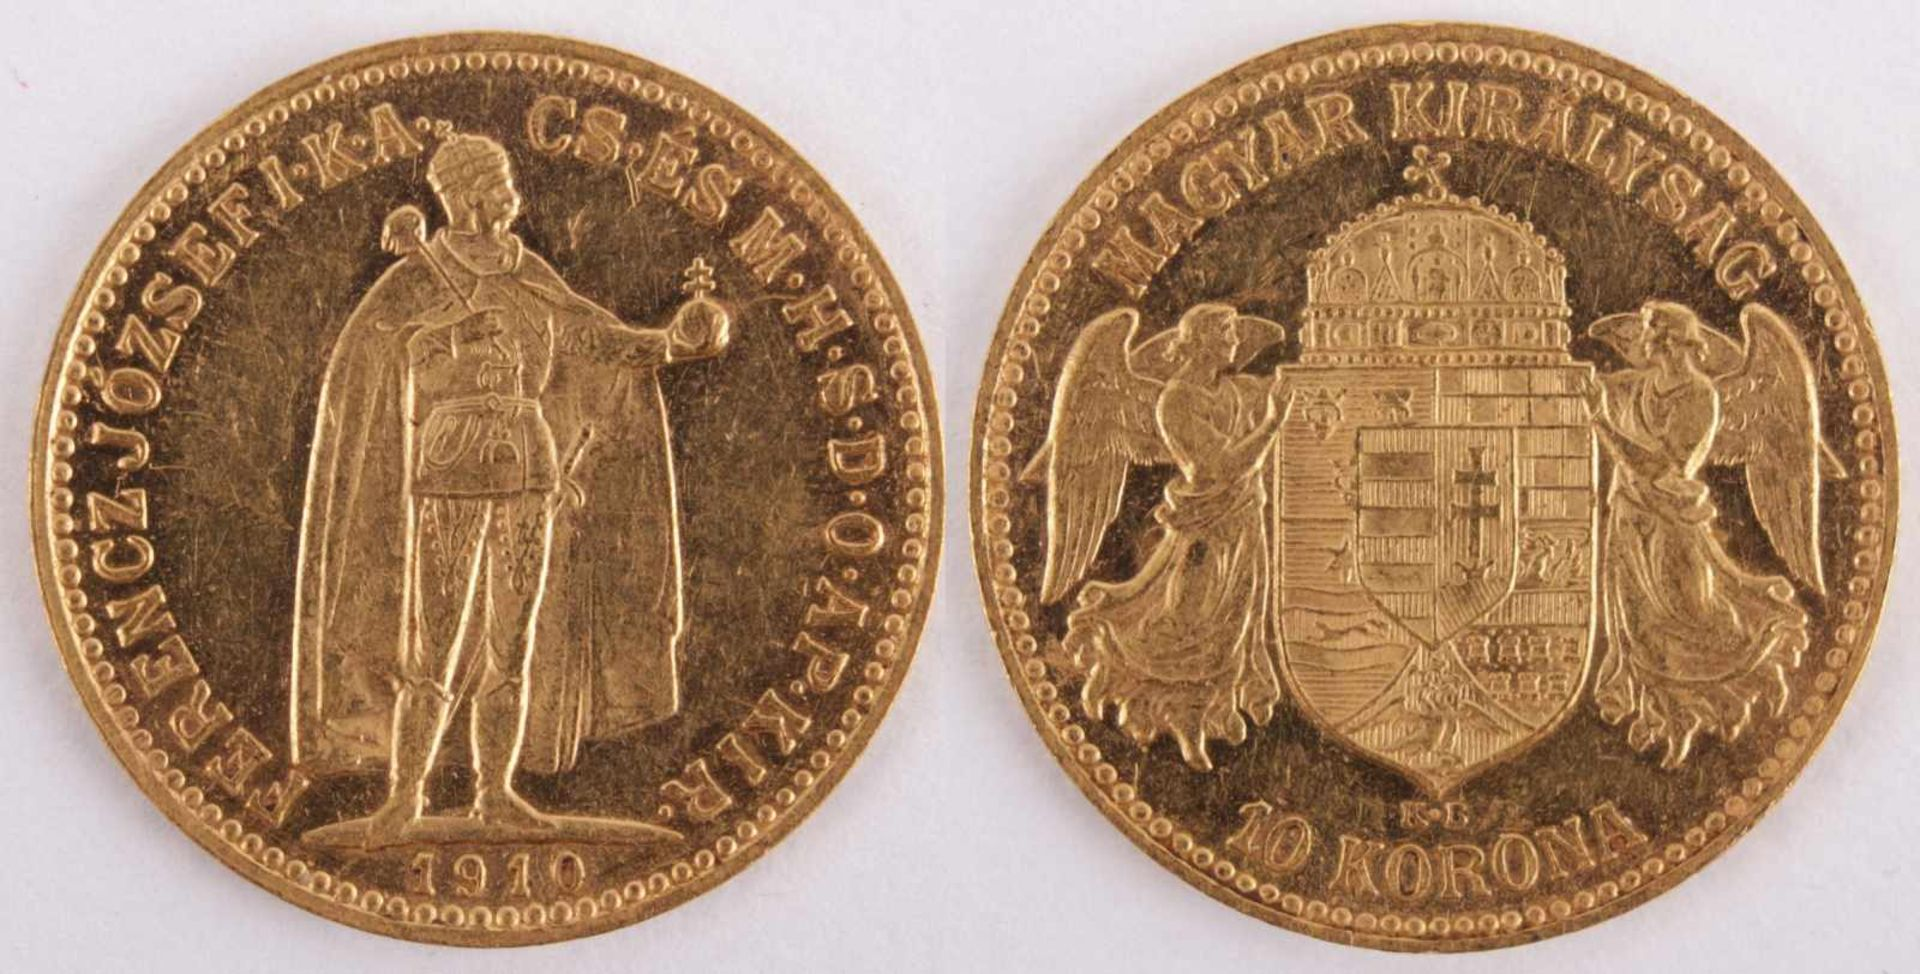 Los 4 - Gold coin: 10 Crown 1910 Austria-Hungary, 10 Crown, year 1910 KB, gold coin, 900/1000 fineness,